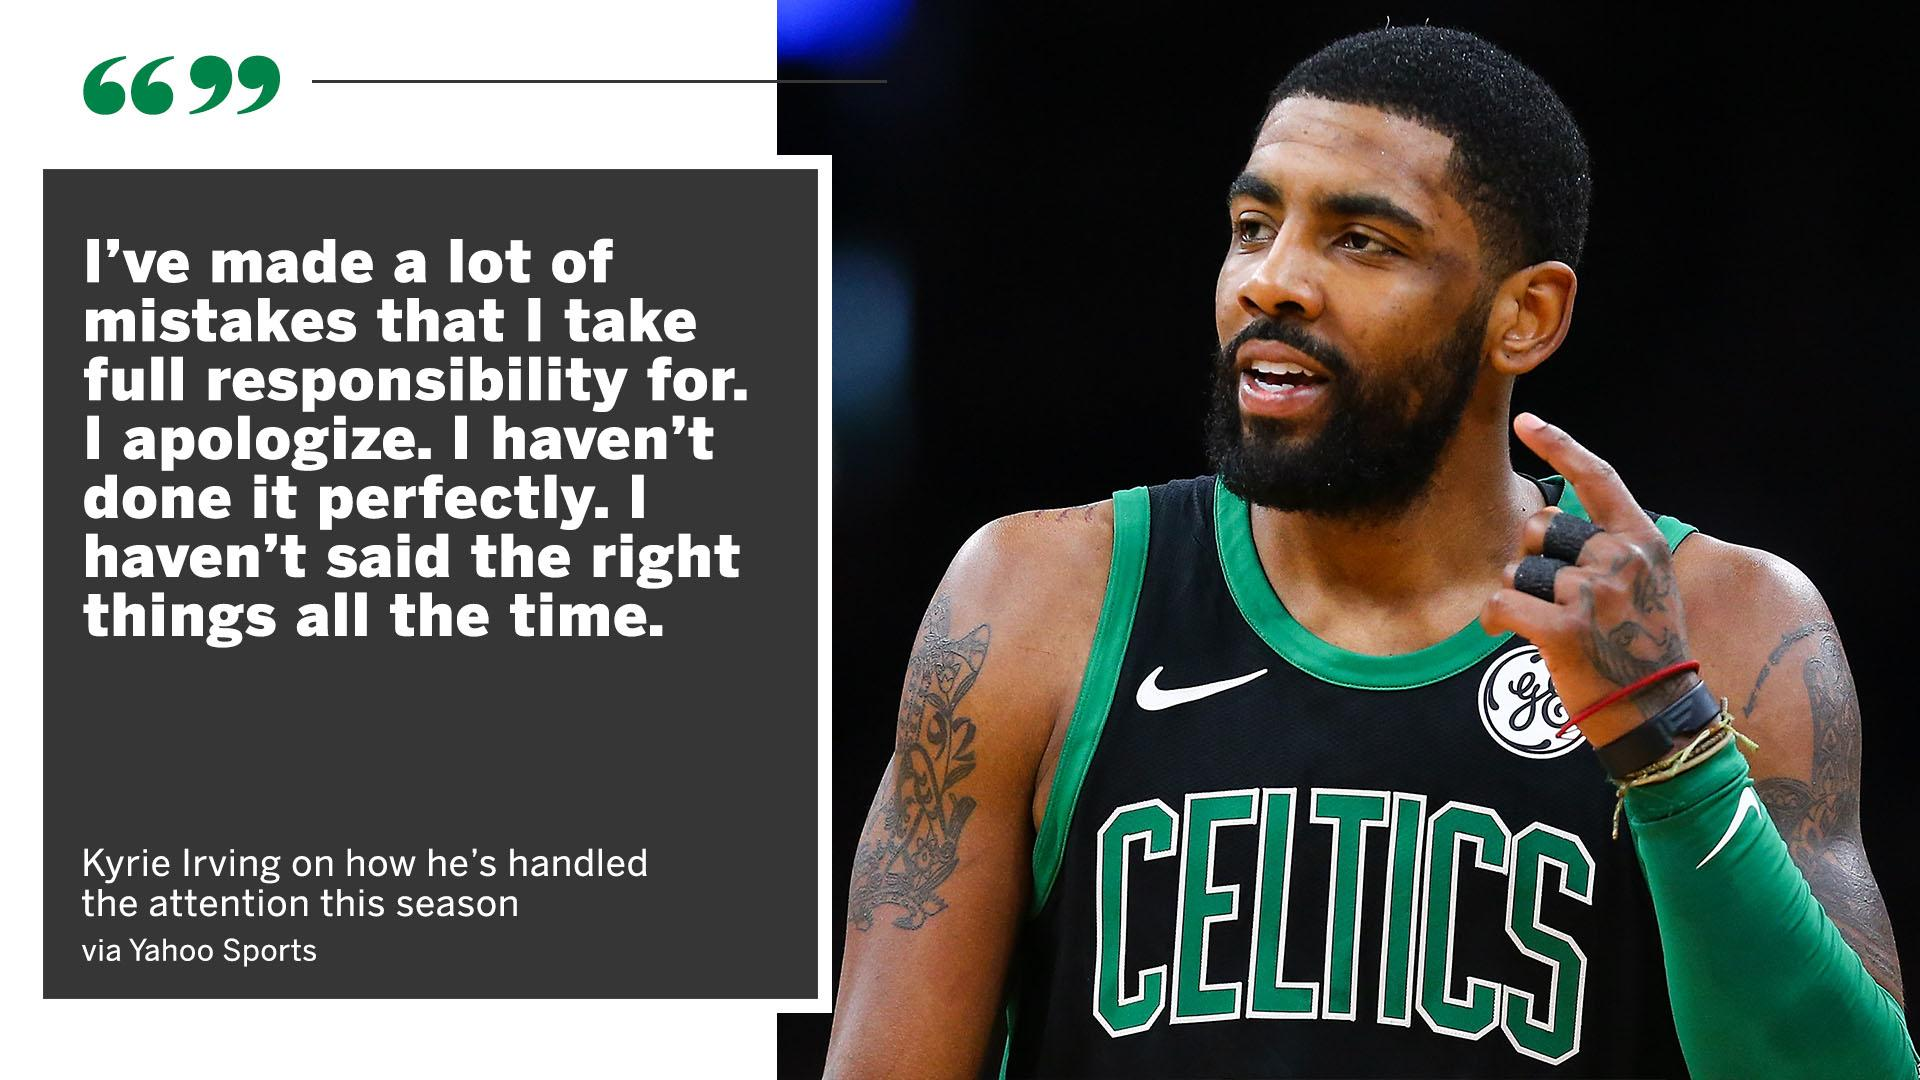 Kyrie owns up to his mistakes this season. https://t.co/k6stYwZH5S